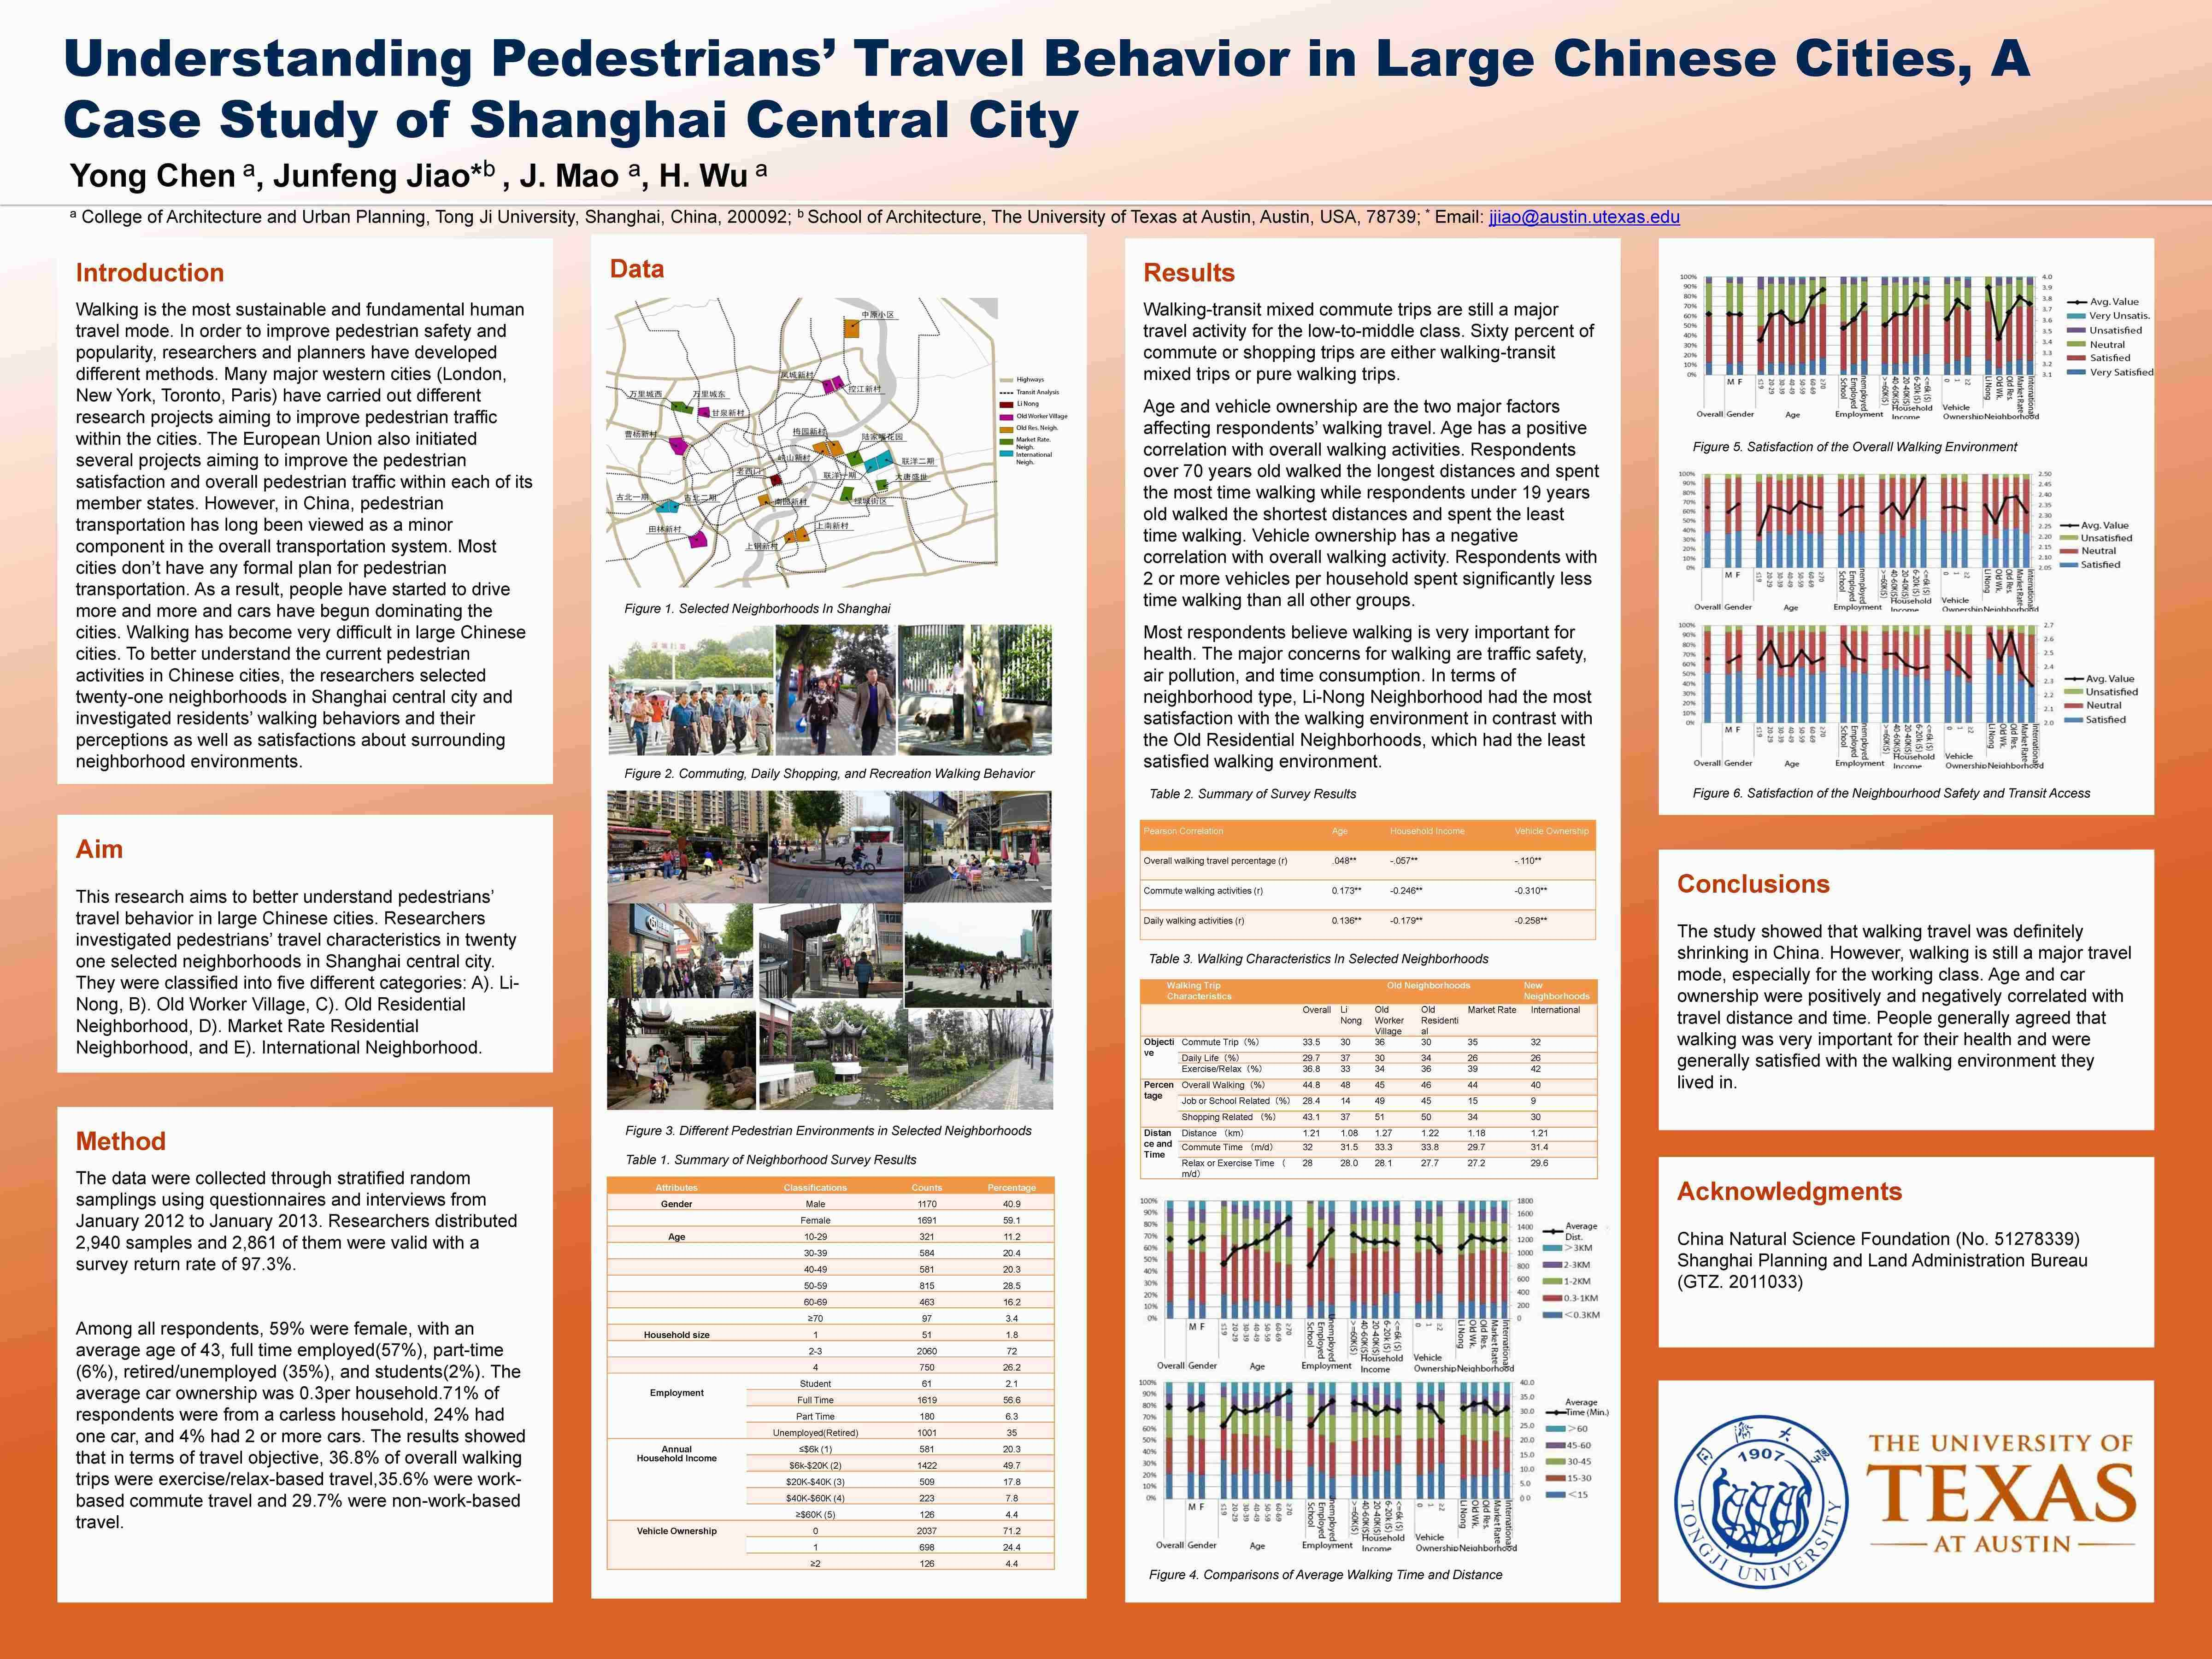 Understanding Pedestrians' Travel Behavior in Large Chinese Cities, A Case Study of Shanghai Central City.